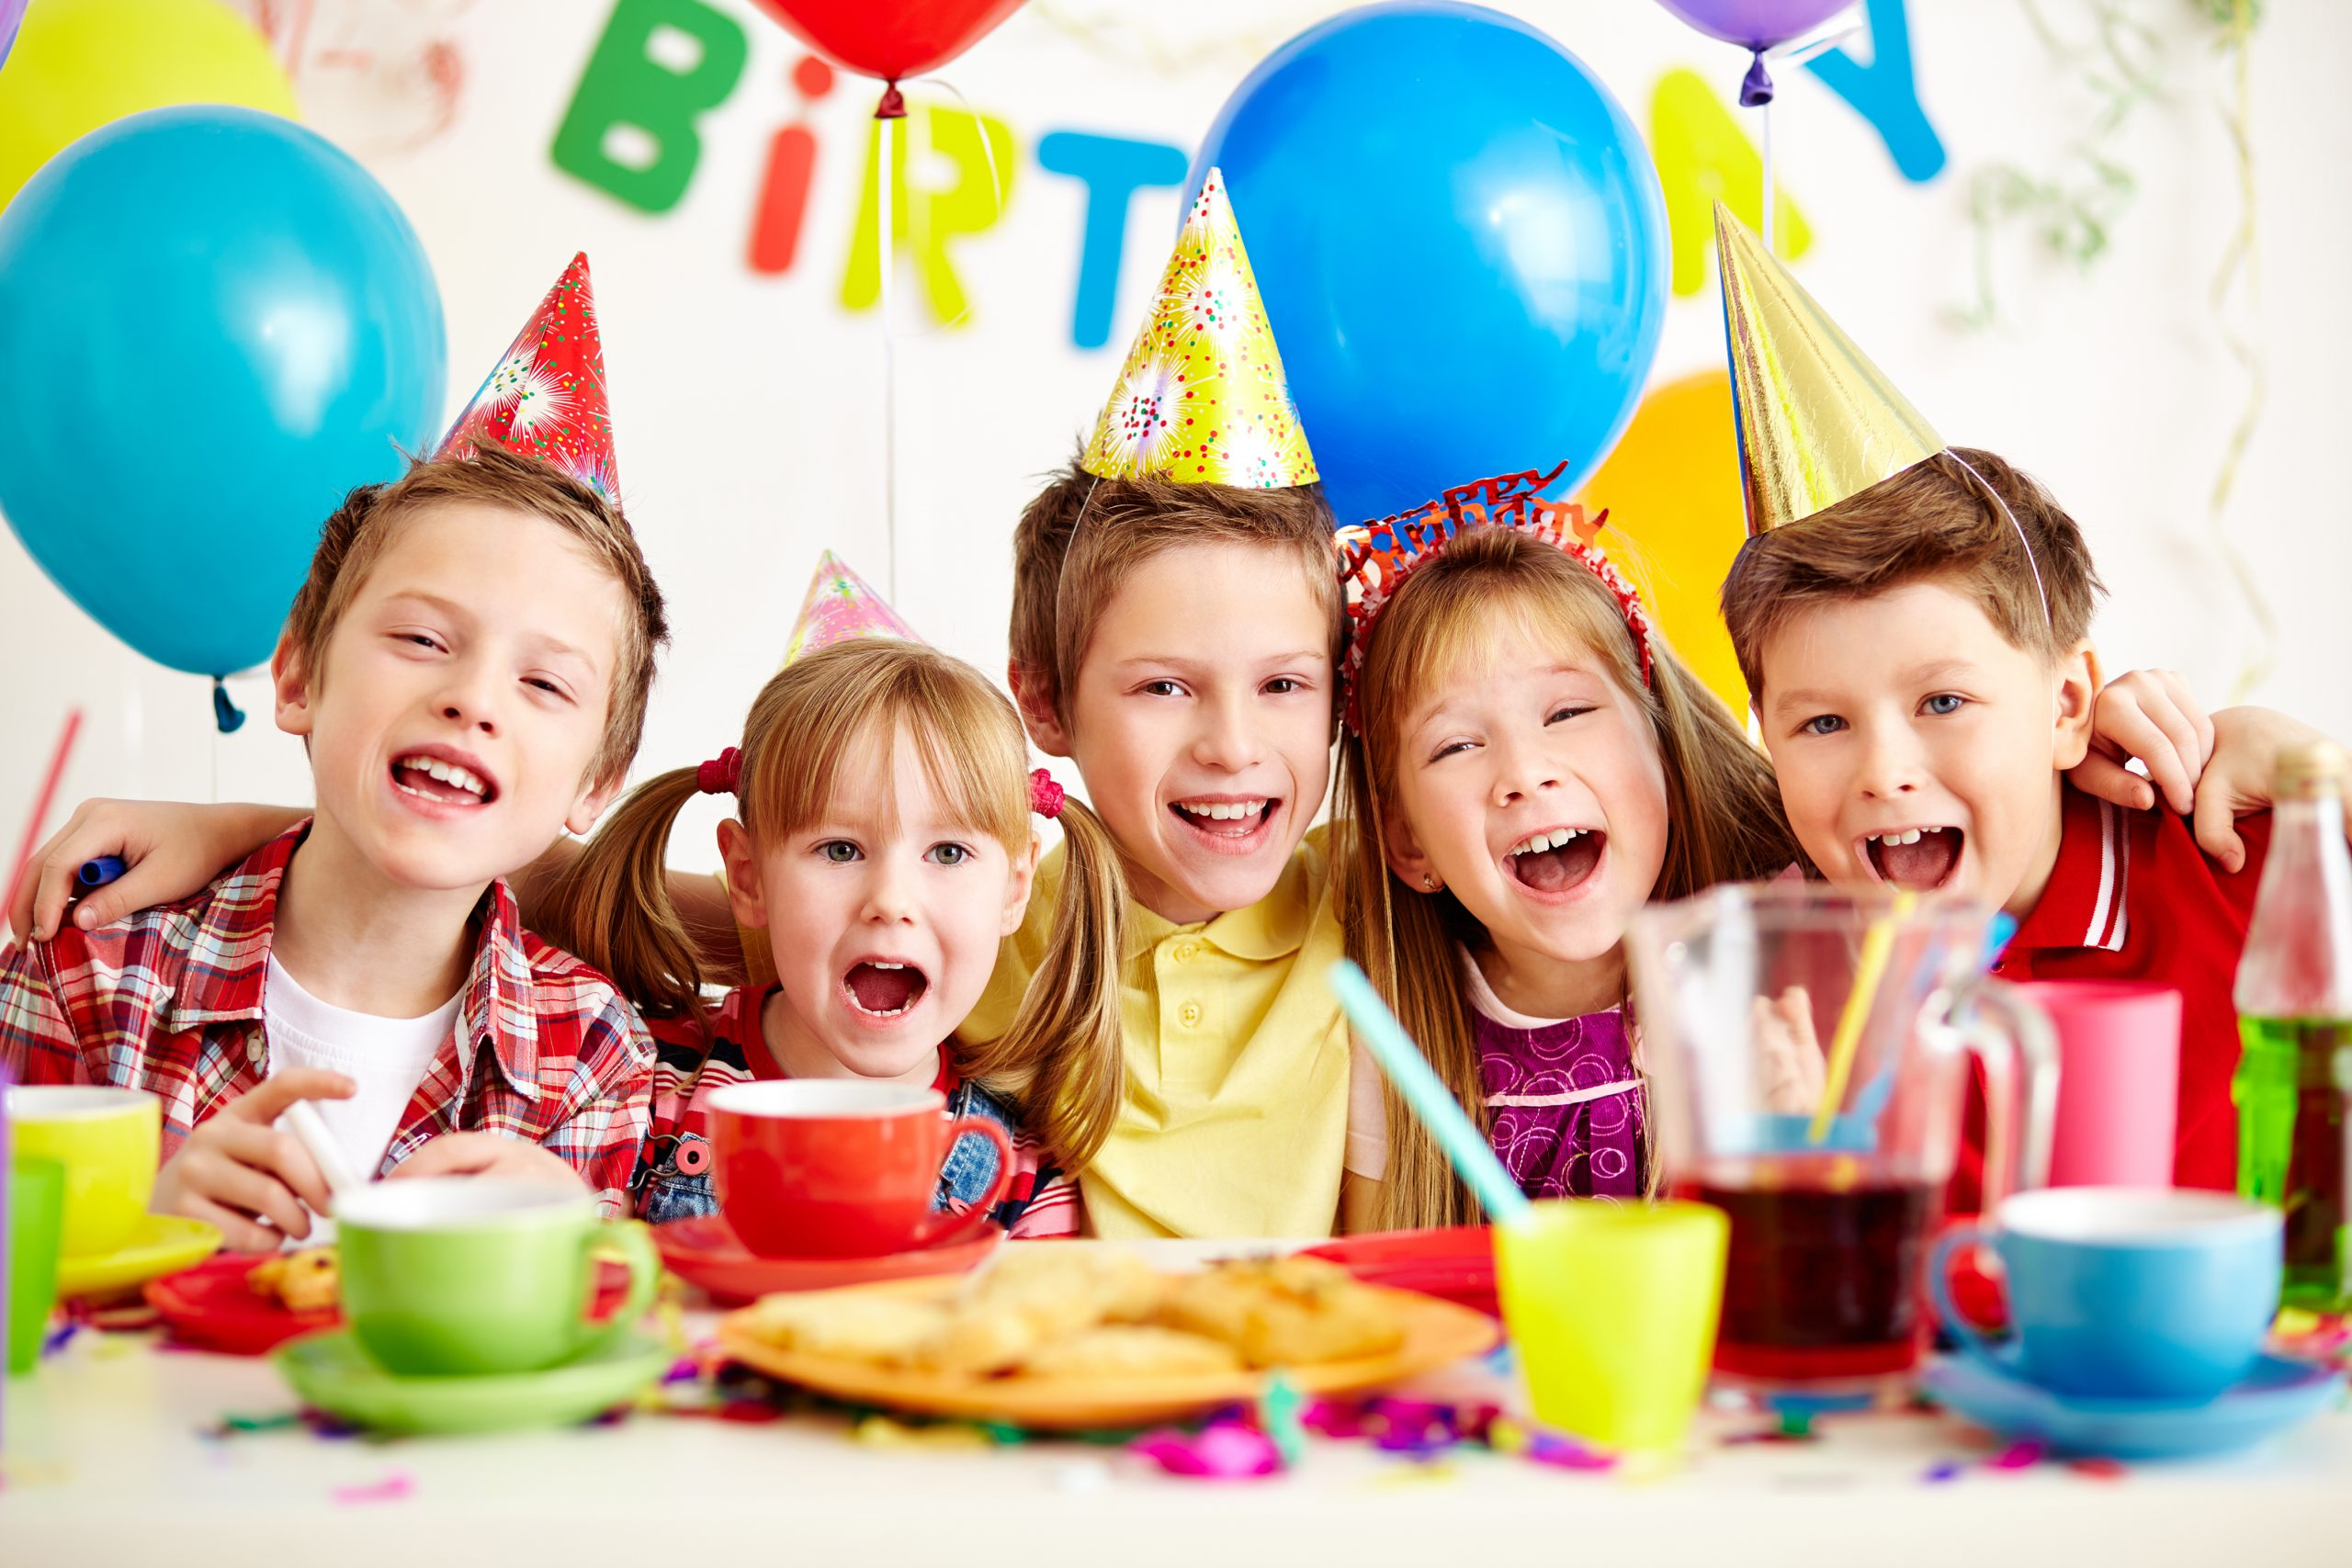 Exciting Themes for Your Kids Birthday Party!